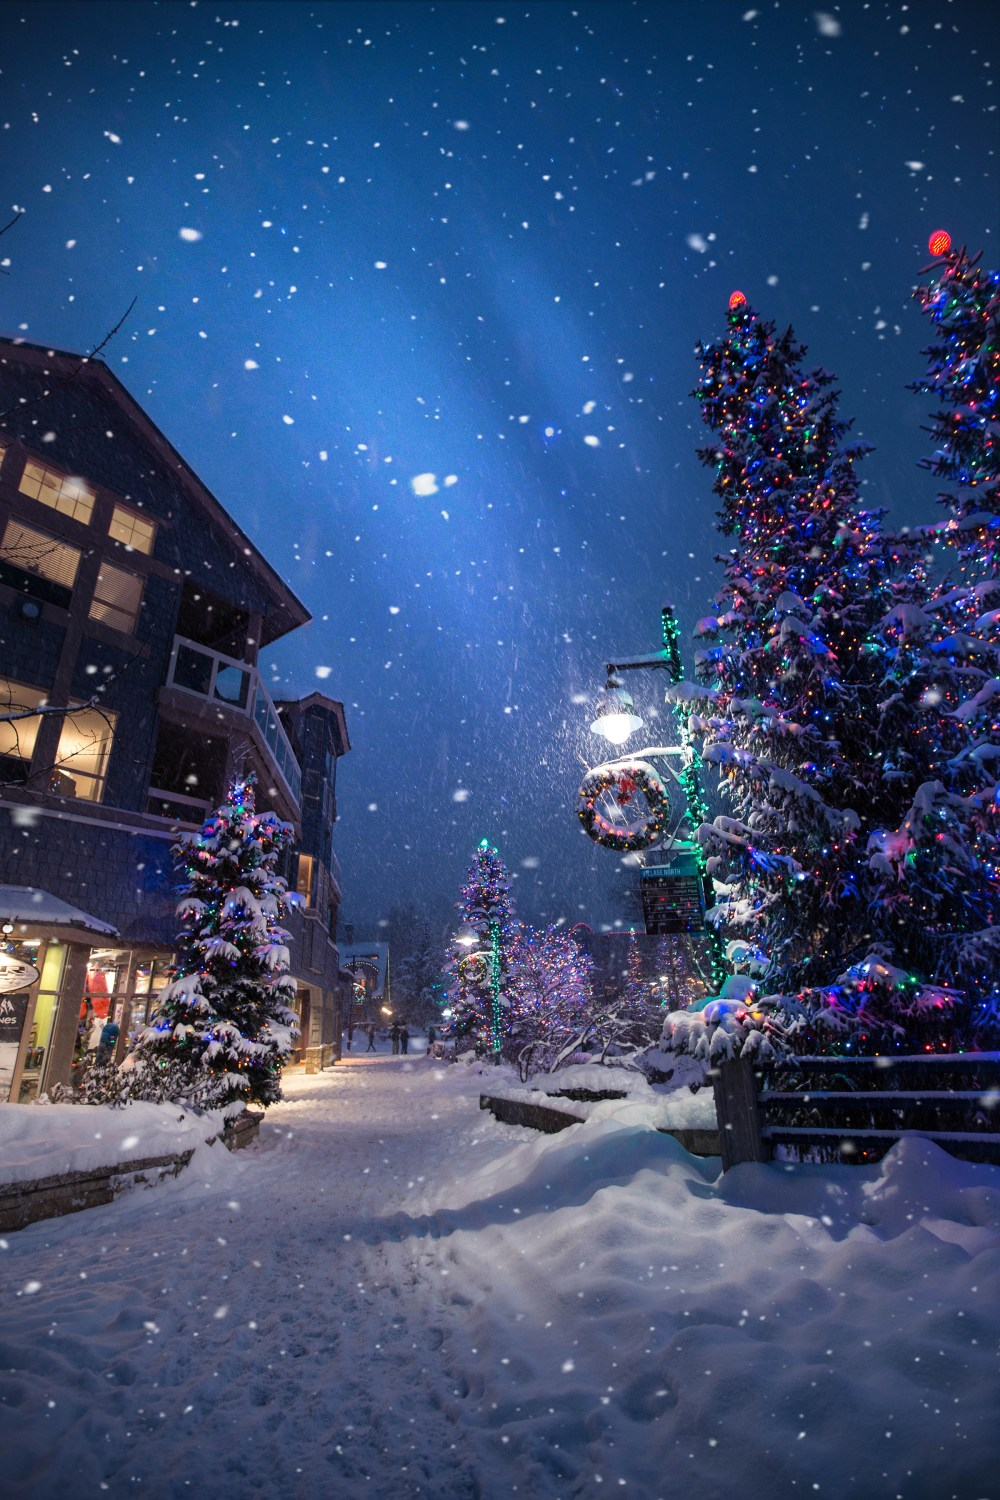 Christmas Pictures HD Download Free Images On Unsplash